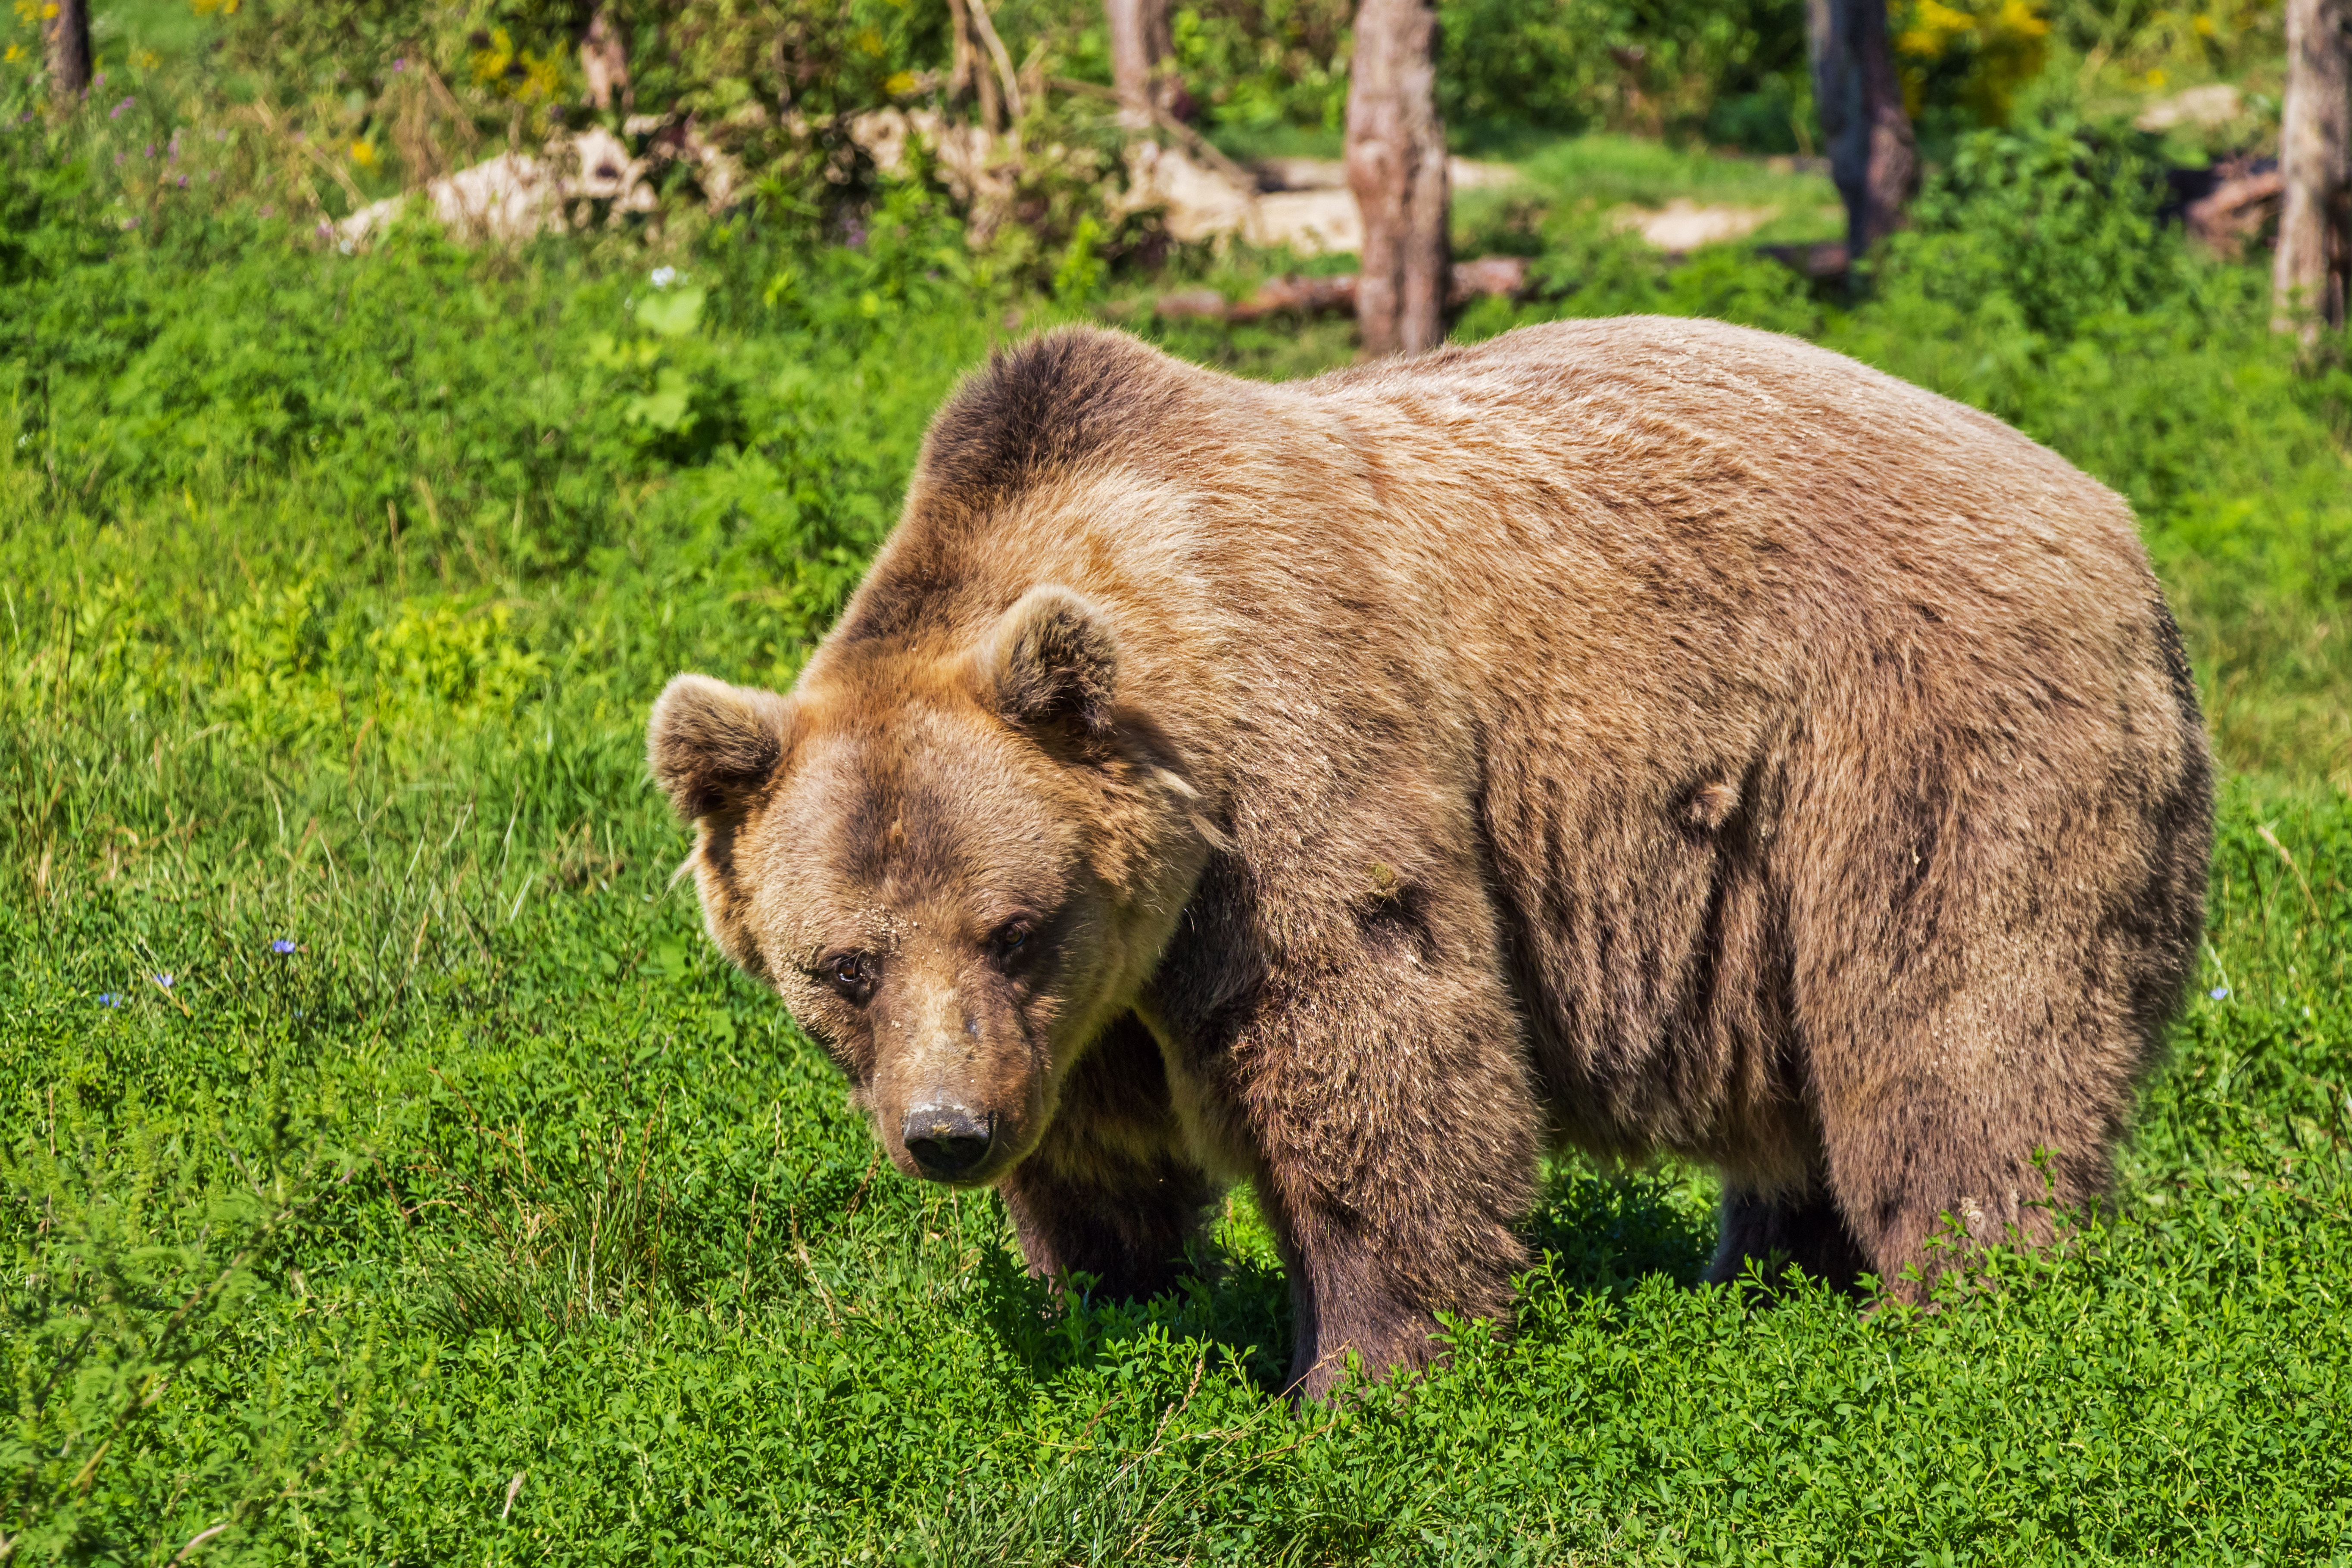 bear pictures pexels free stock photos